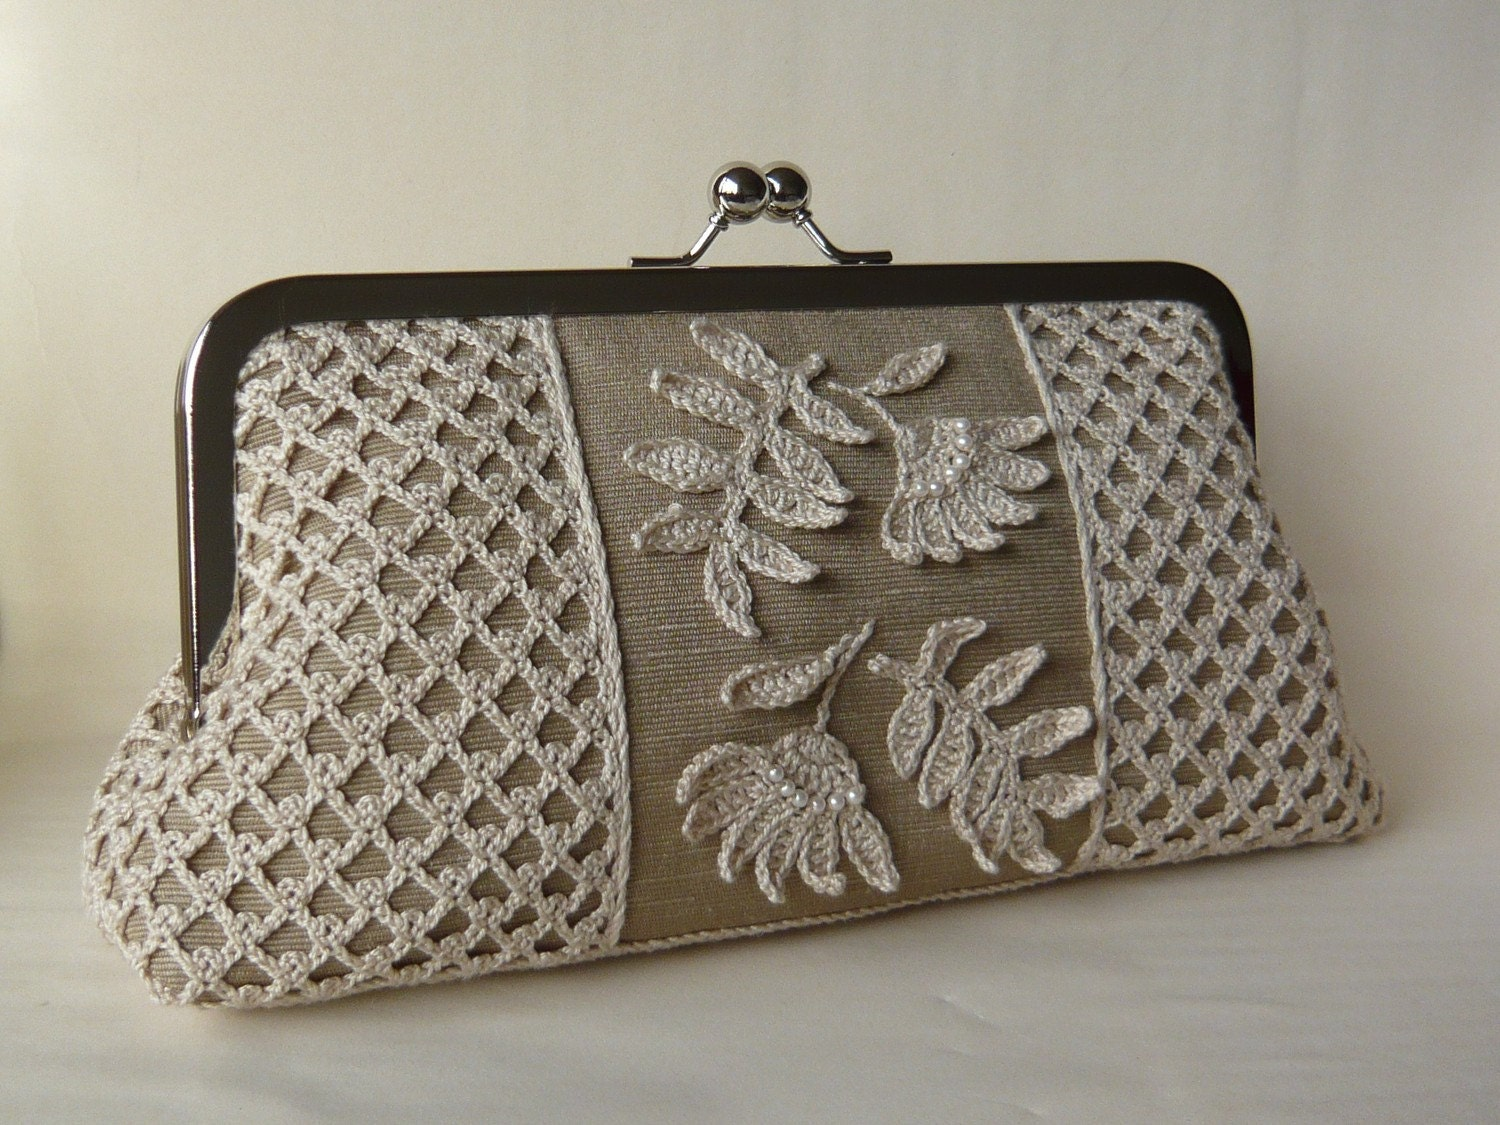 Irish crochet clutch bag